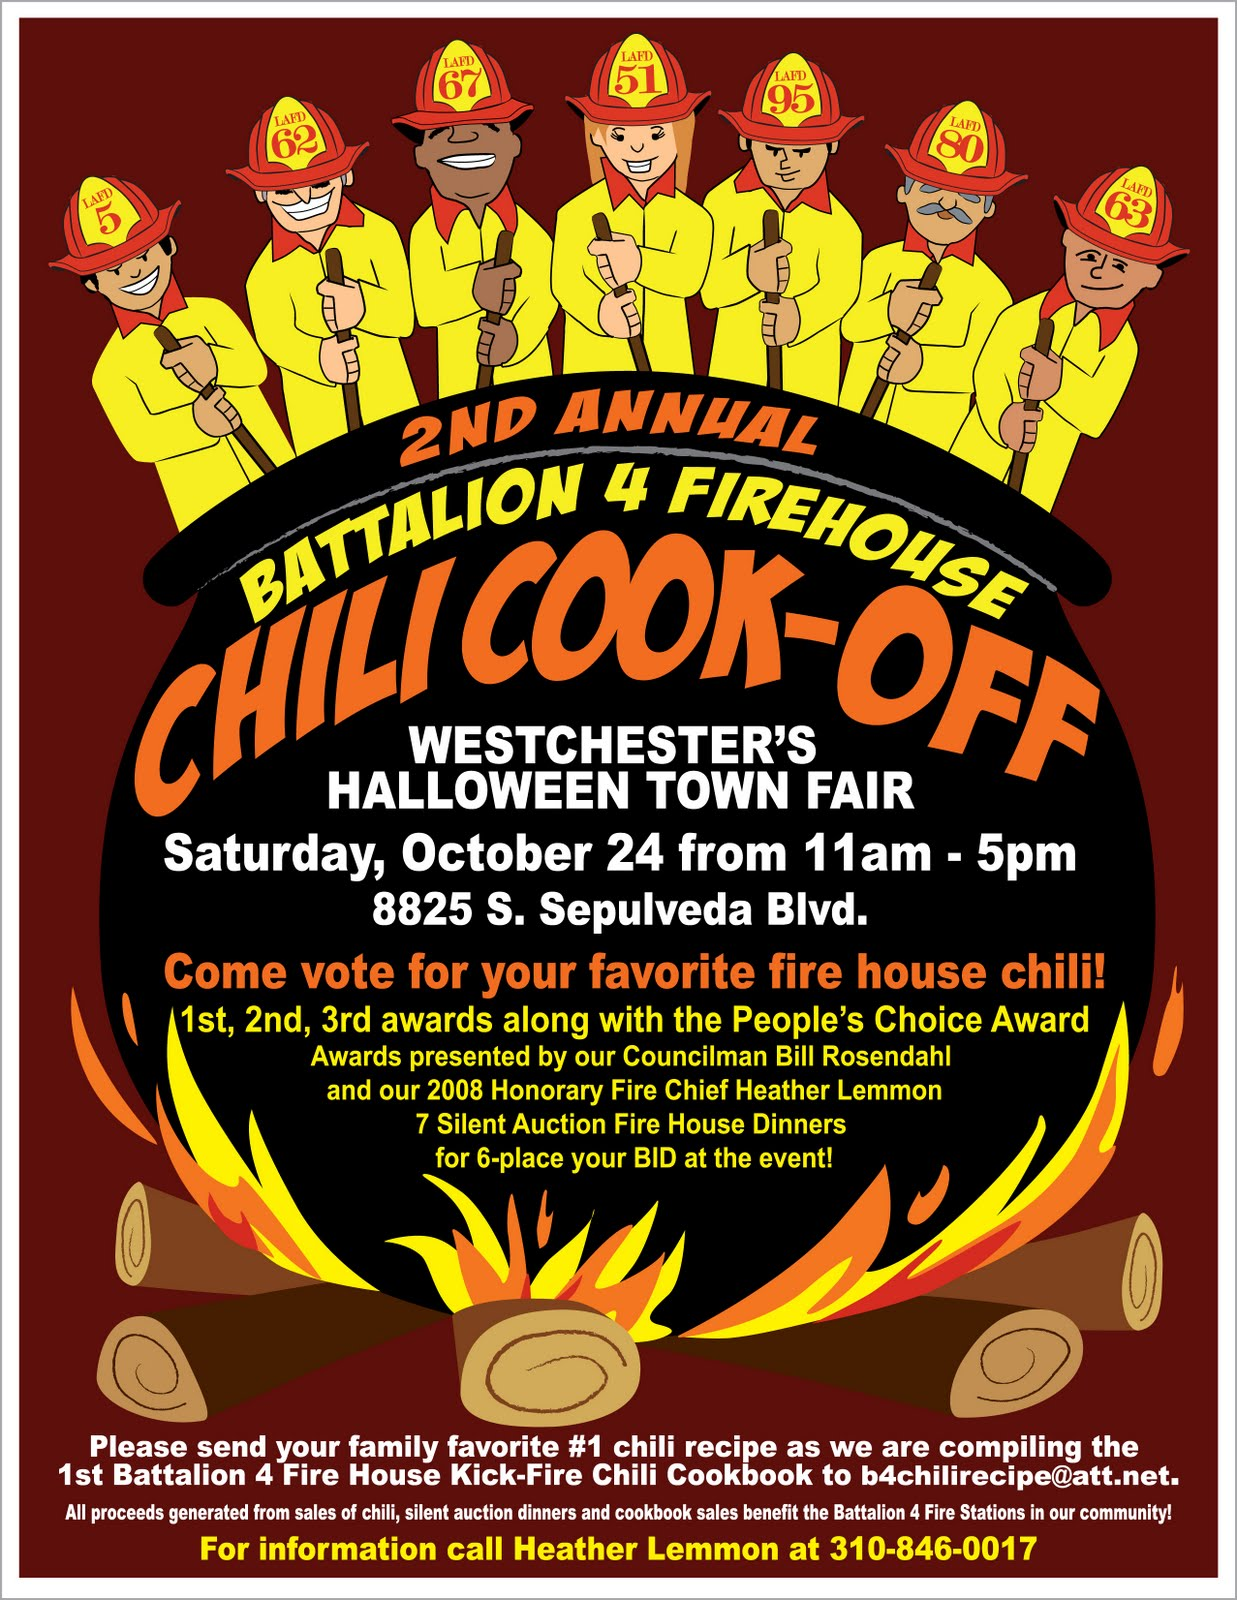 Chili cook off ideas flyer images chili cook off flyer xflitez Choice Image